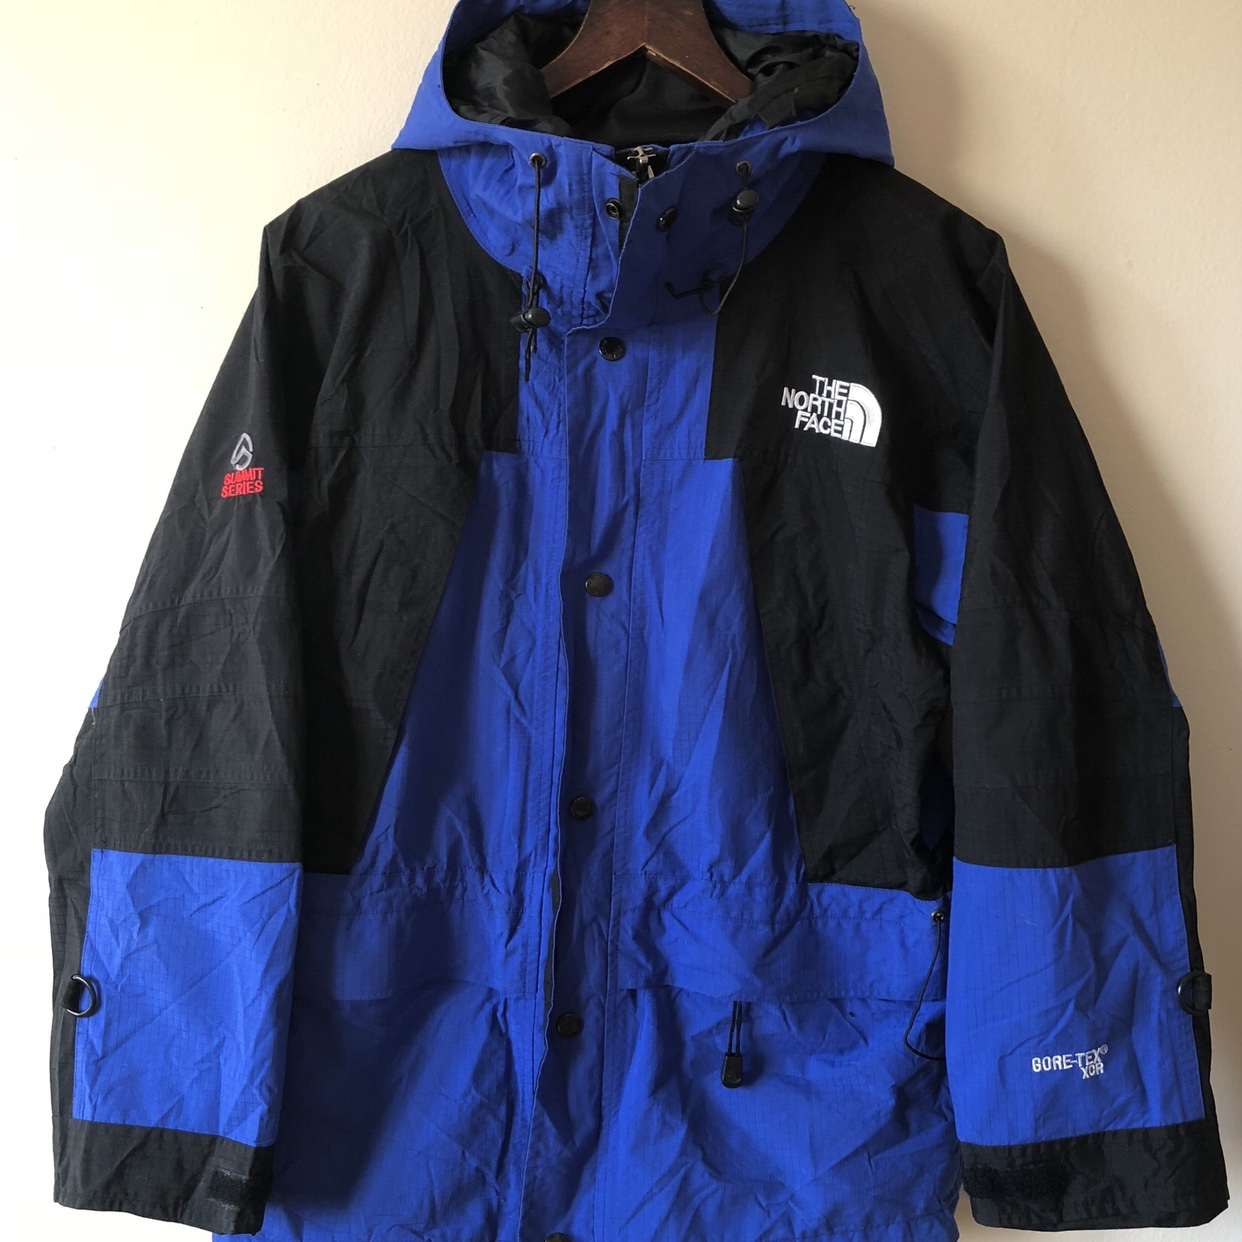 c8ab85d0f Vintage The North Face Summit Series Gore-Tex XCR... - Depop